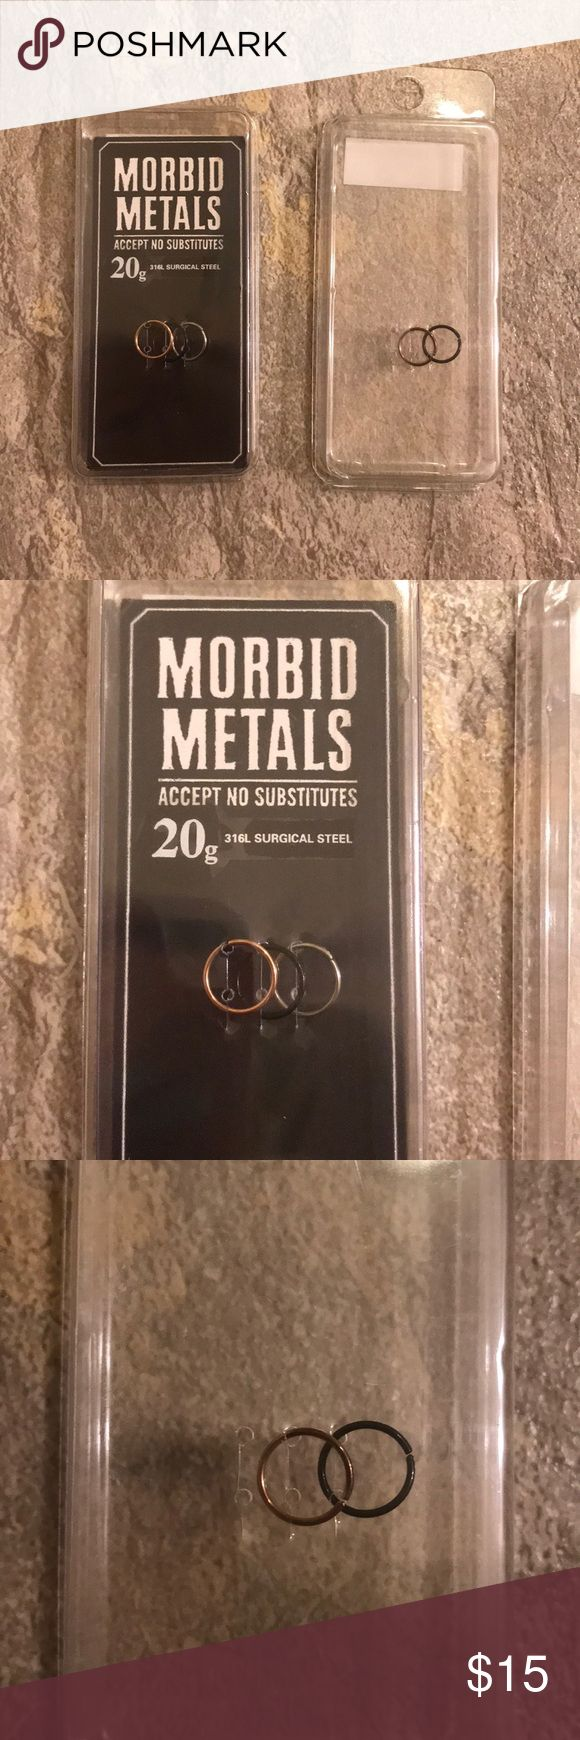 Morbid Metals nose rings 20g surgical steel nose rings! 5 of them not needed and only tried one on, doesn't fit my nose right. Morbid Metals Jewelry